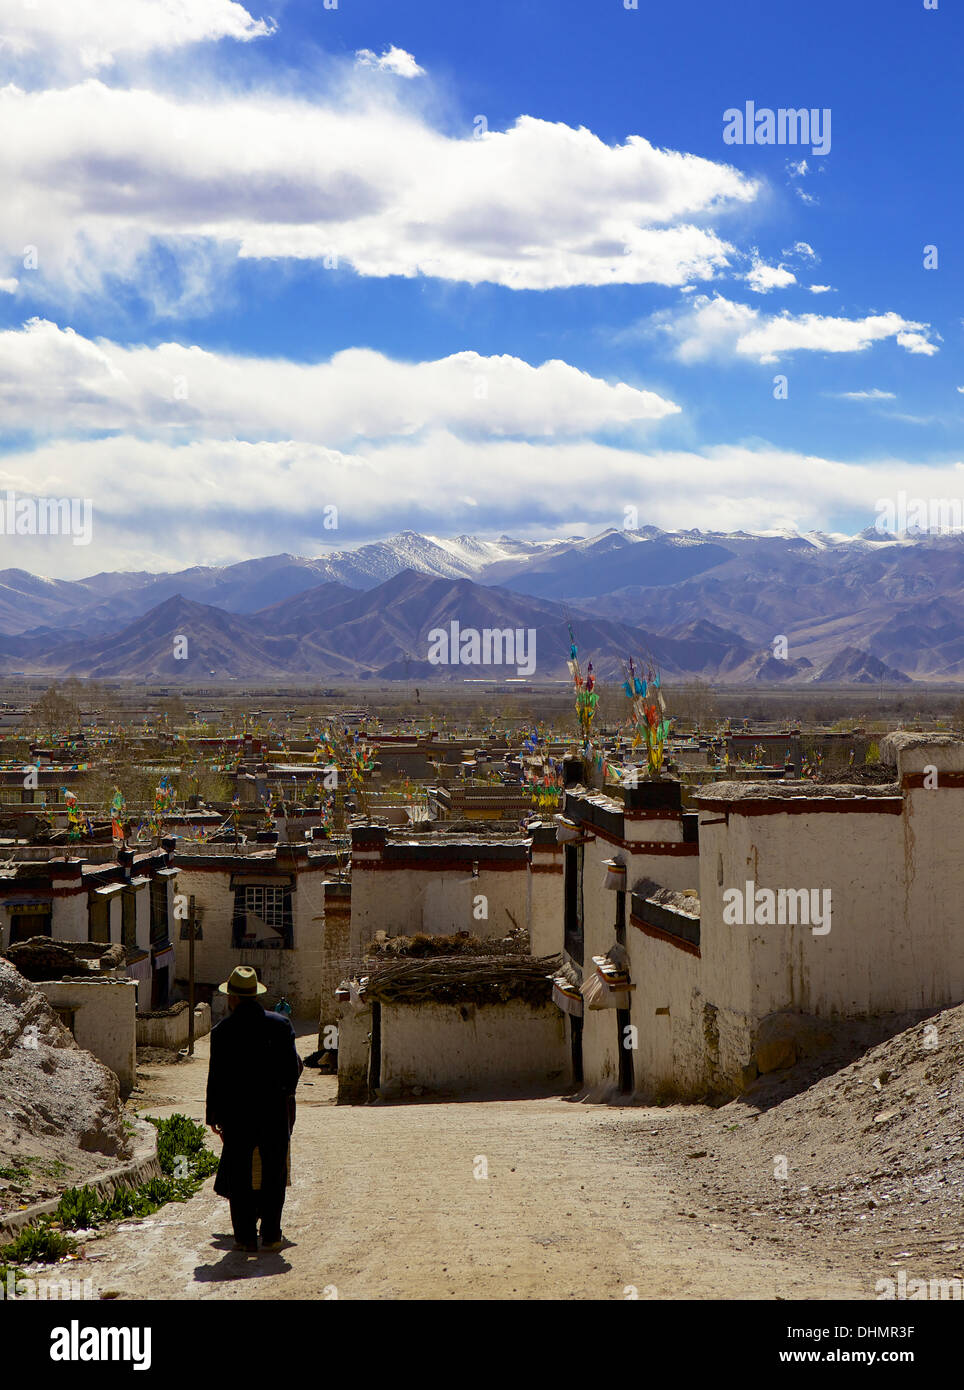 Traditional Tibetan houses in old village area, Gyantse (Gyangtse) with mountain range in background, Tibet, China, Asia - Stock Image